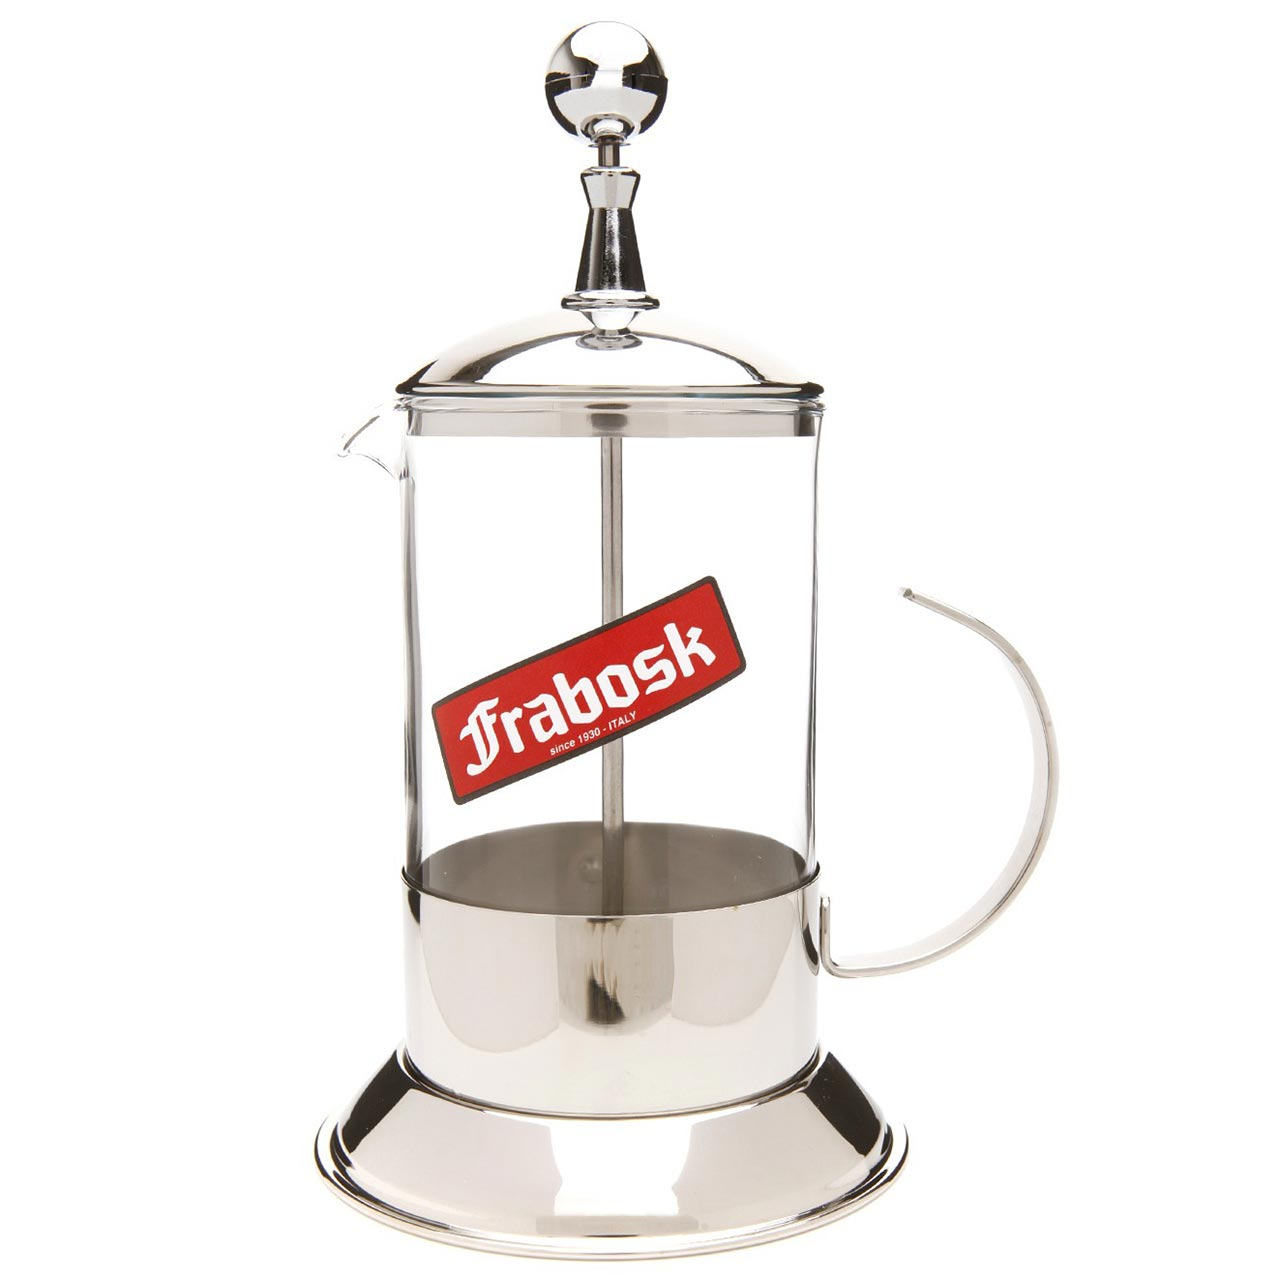 FRABOSK Vintage Cafetiere Coffee or Tea Plunger 8 Cup | the design gift shop